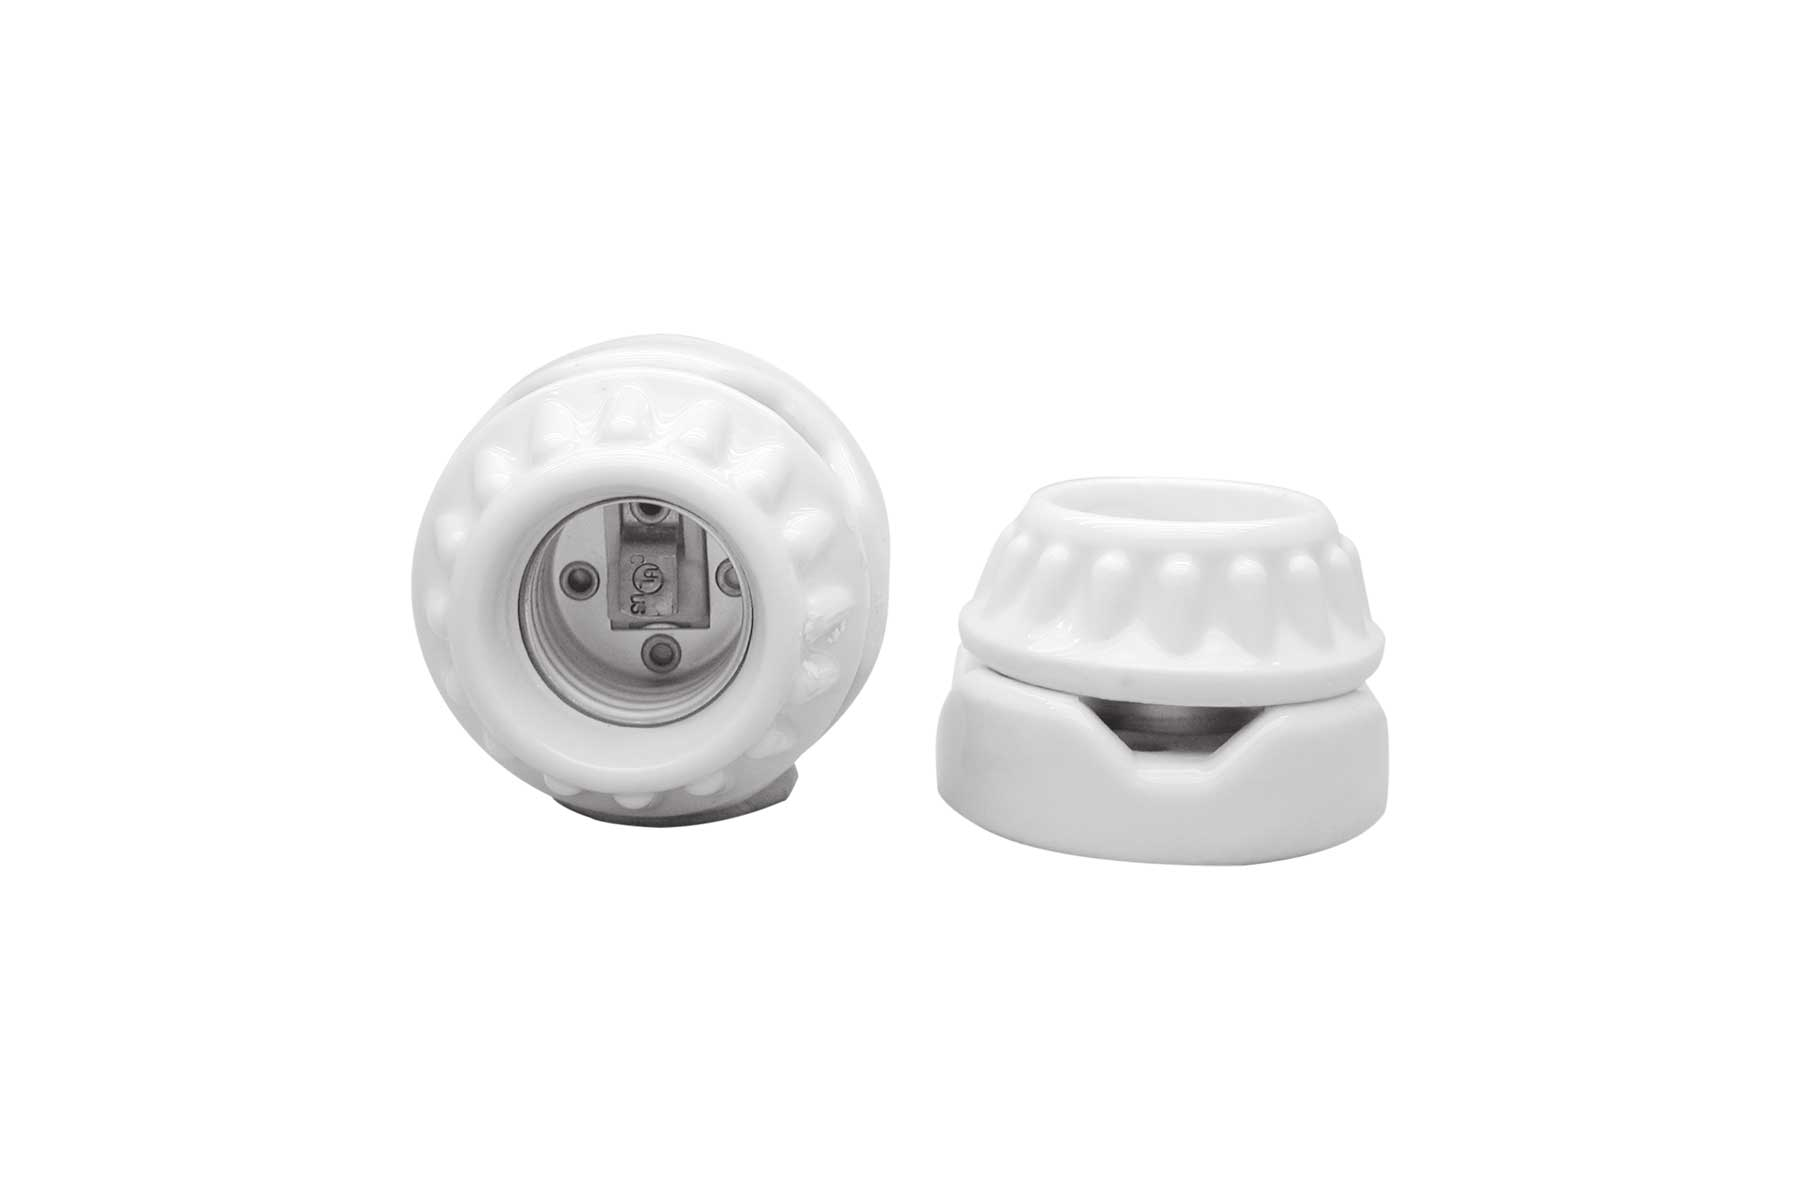 Two Piece Porcelain Keyless Incandescent Light Socket with Two Screw Mounting